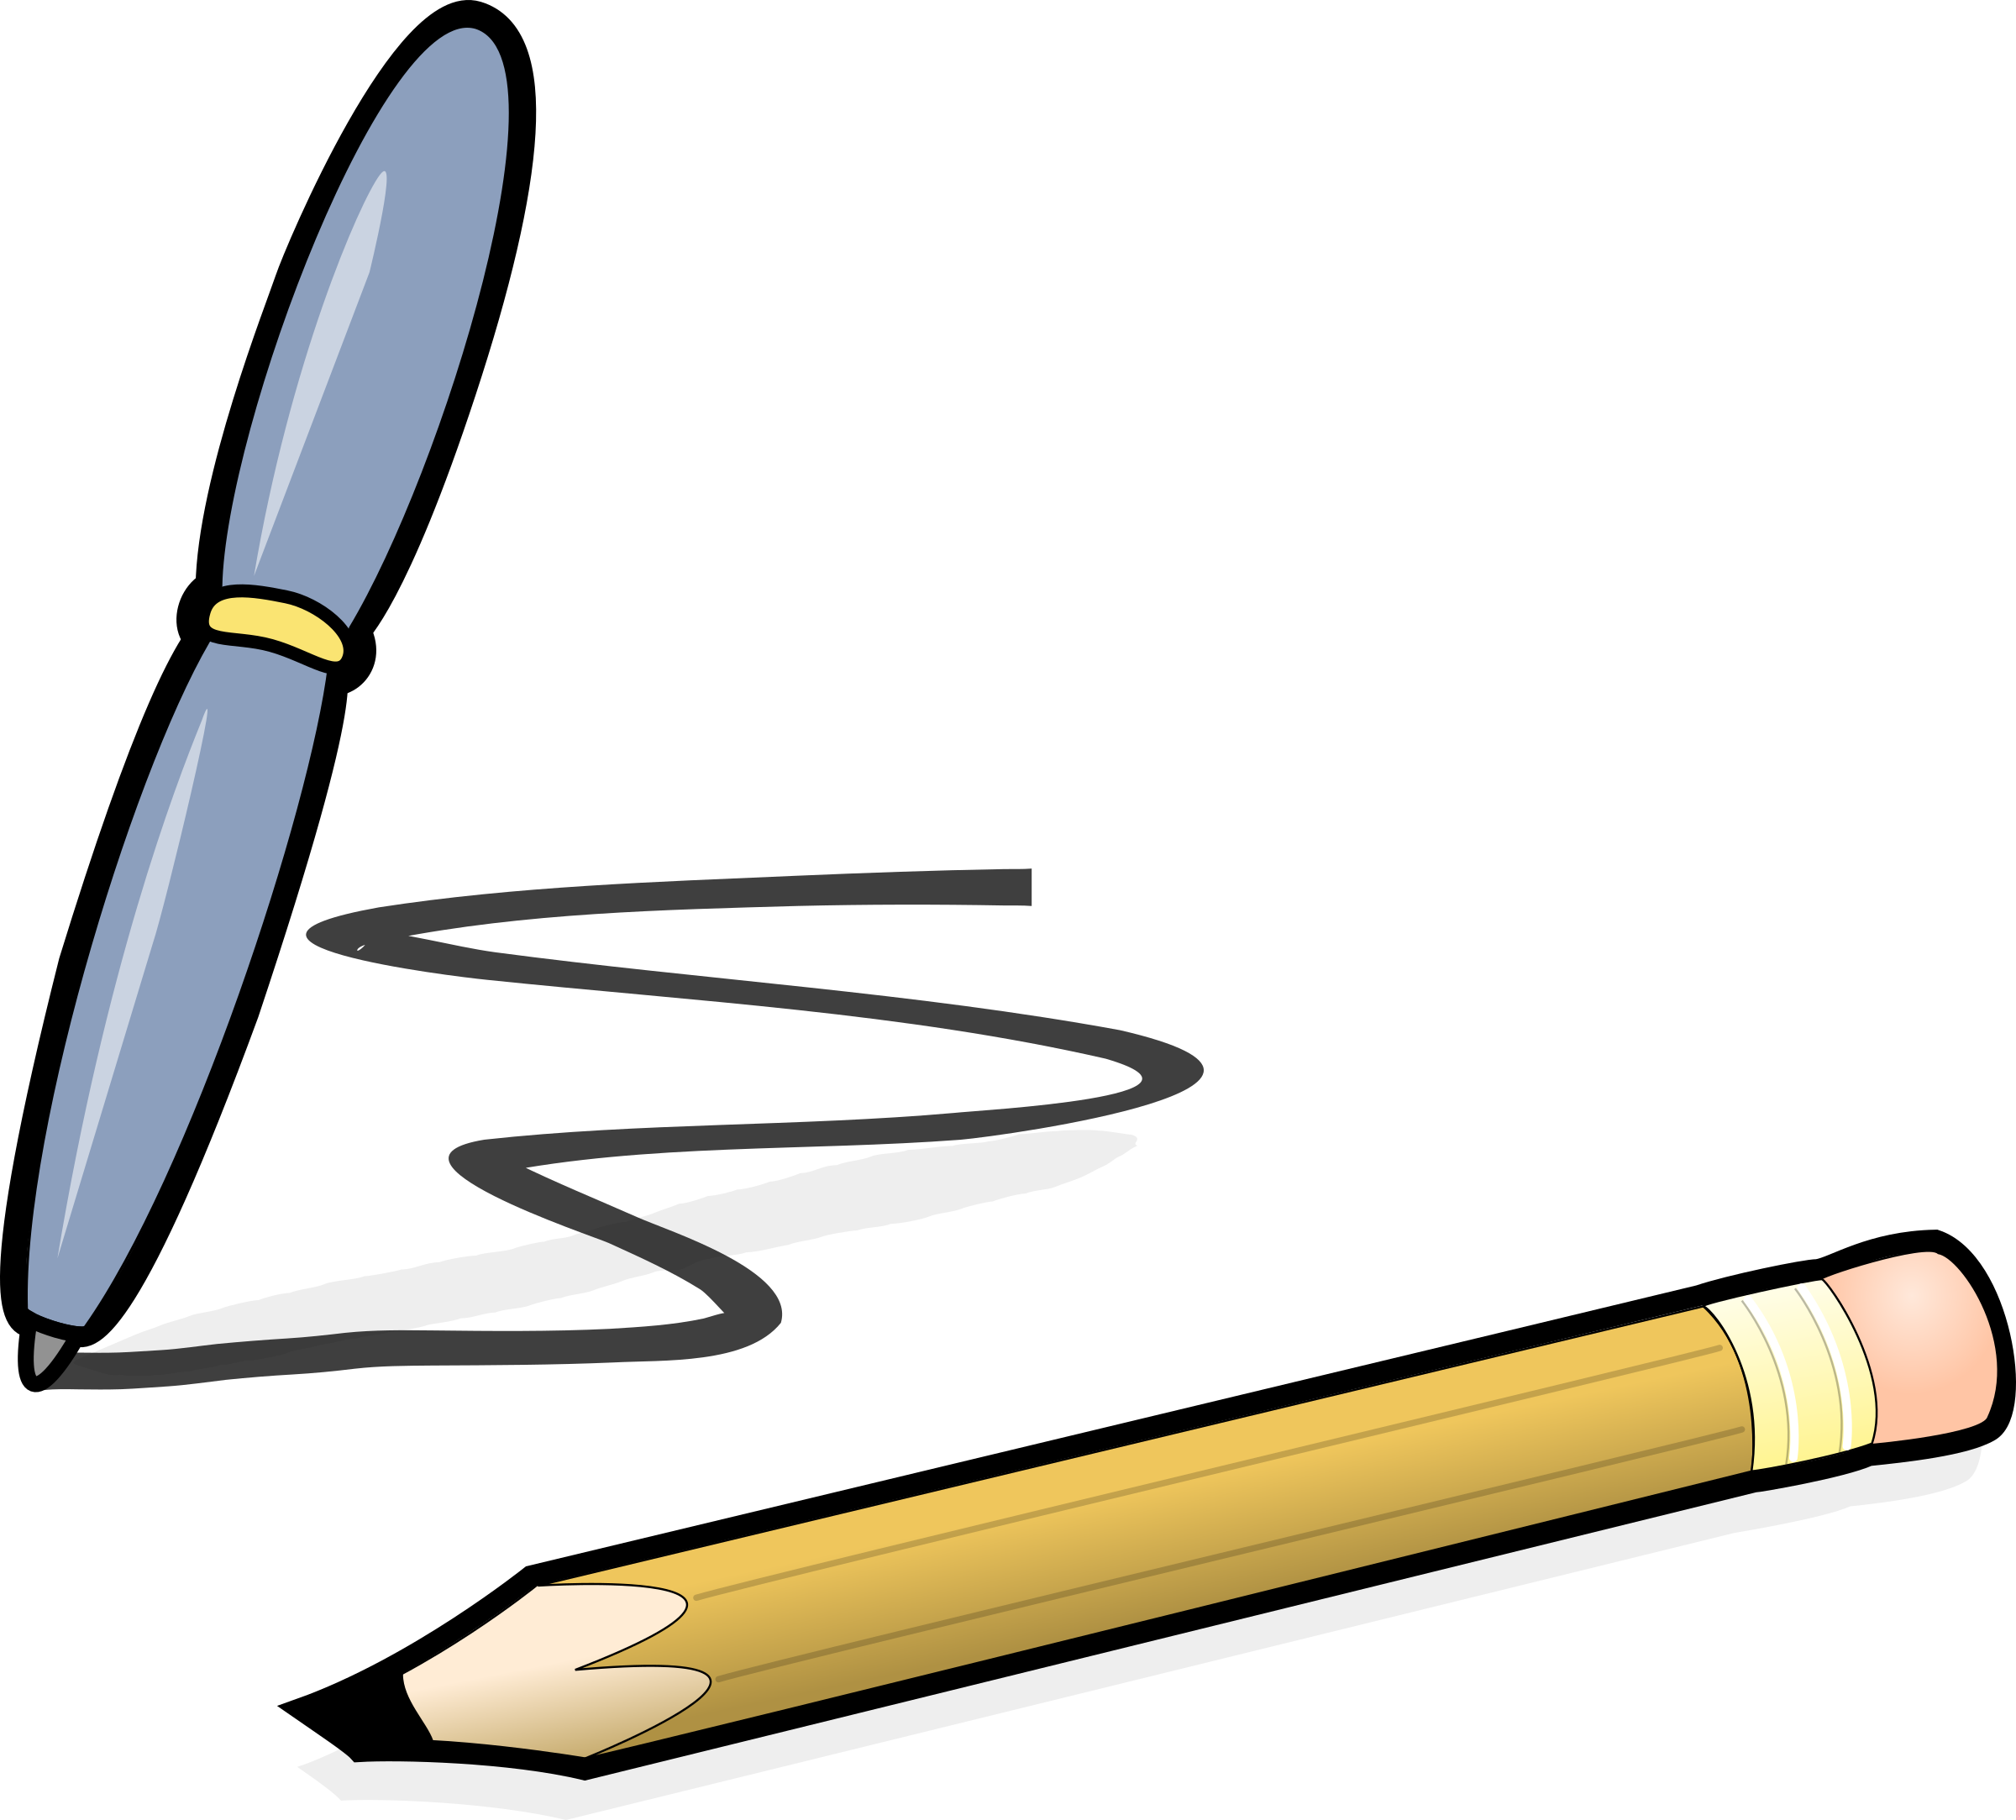 Editingsoftware clipart handwriting pen Pen pencil pencil & pen